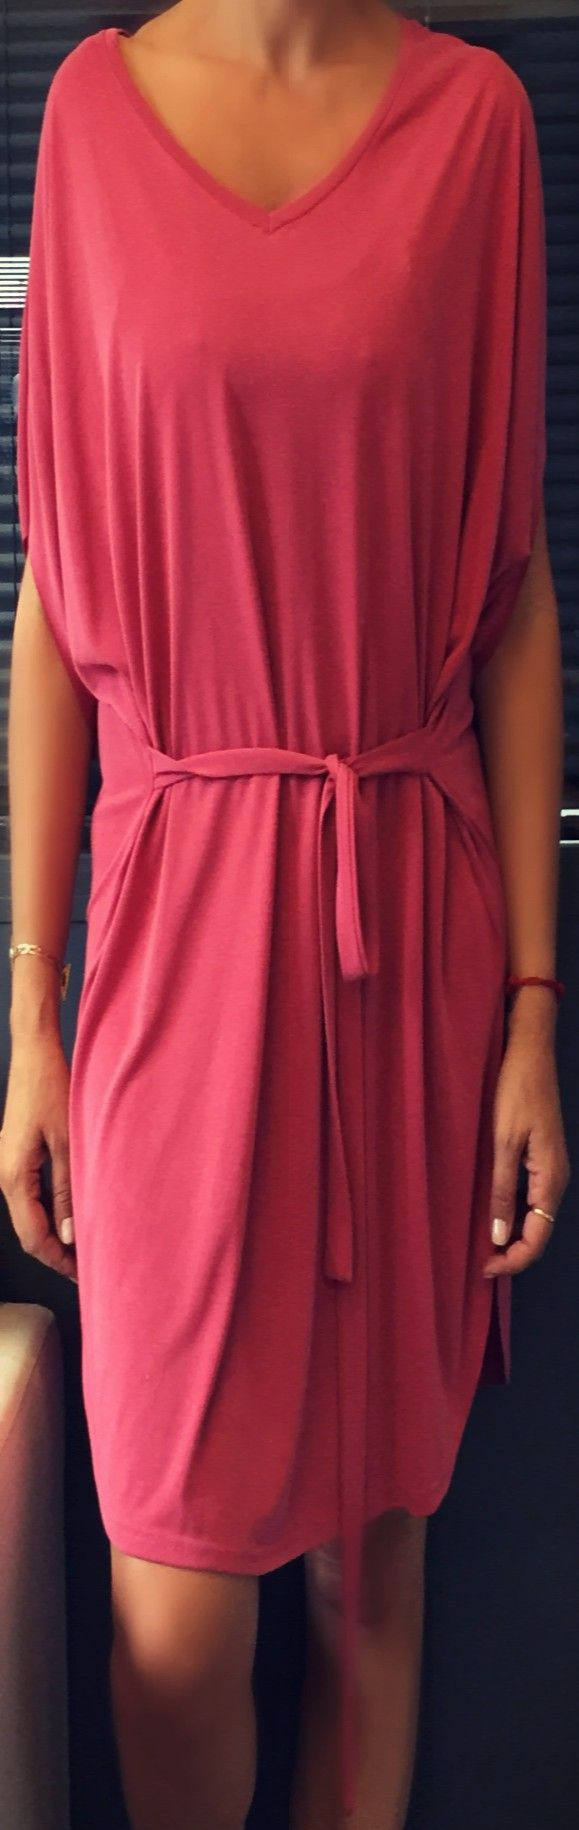 #Pink #Dress by #Nizal Discover more in our #Eshop #summerdress